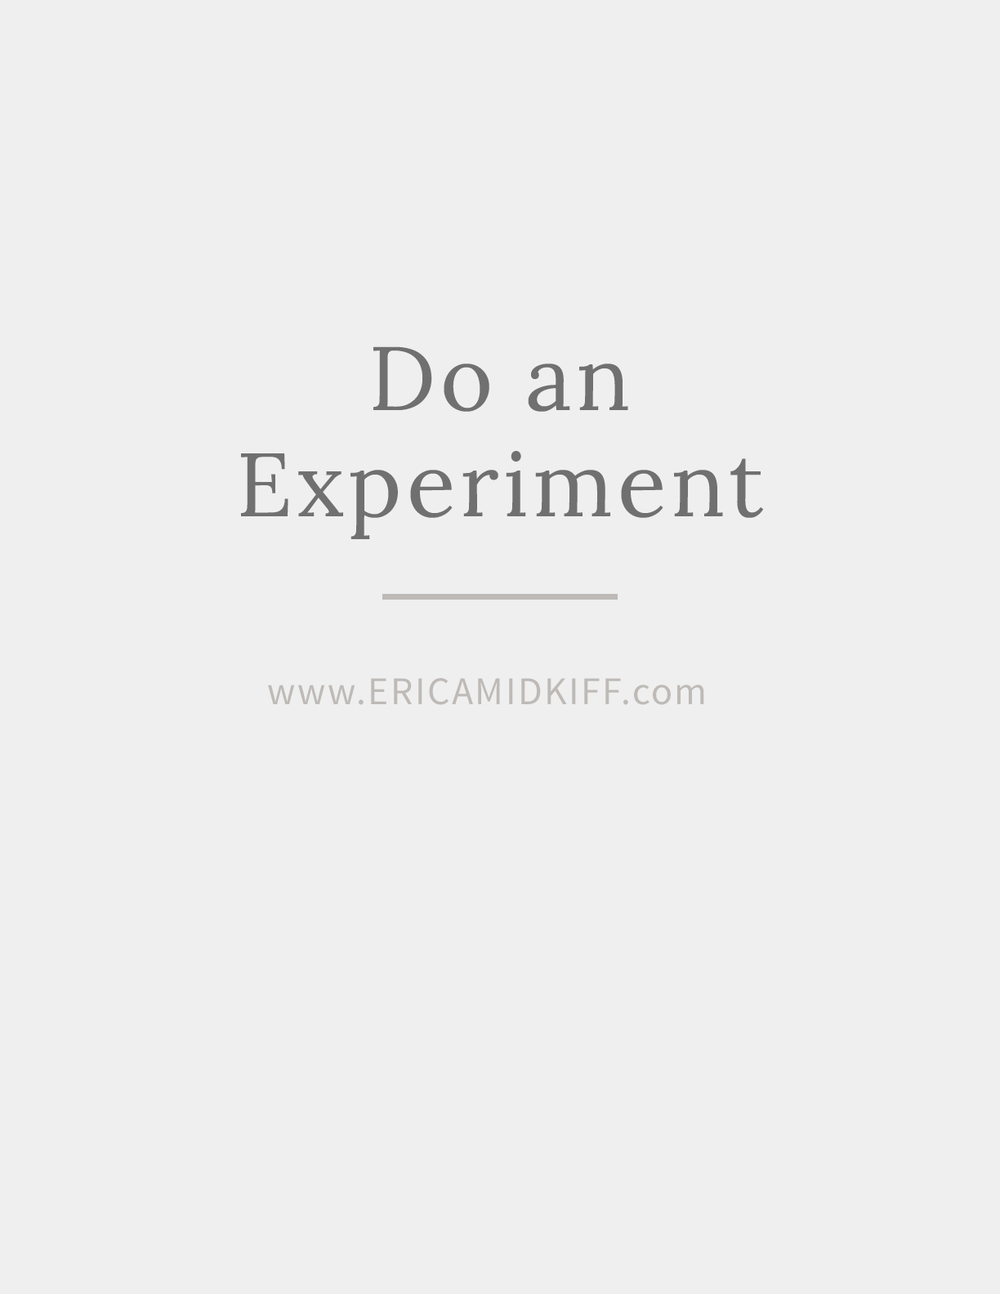 Do an Experiment - Erica Midkiff